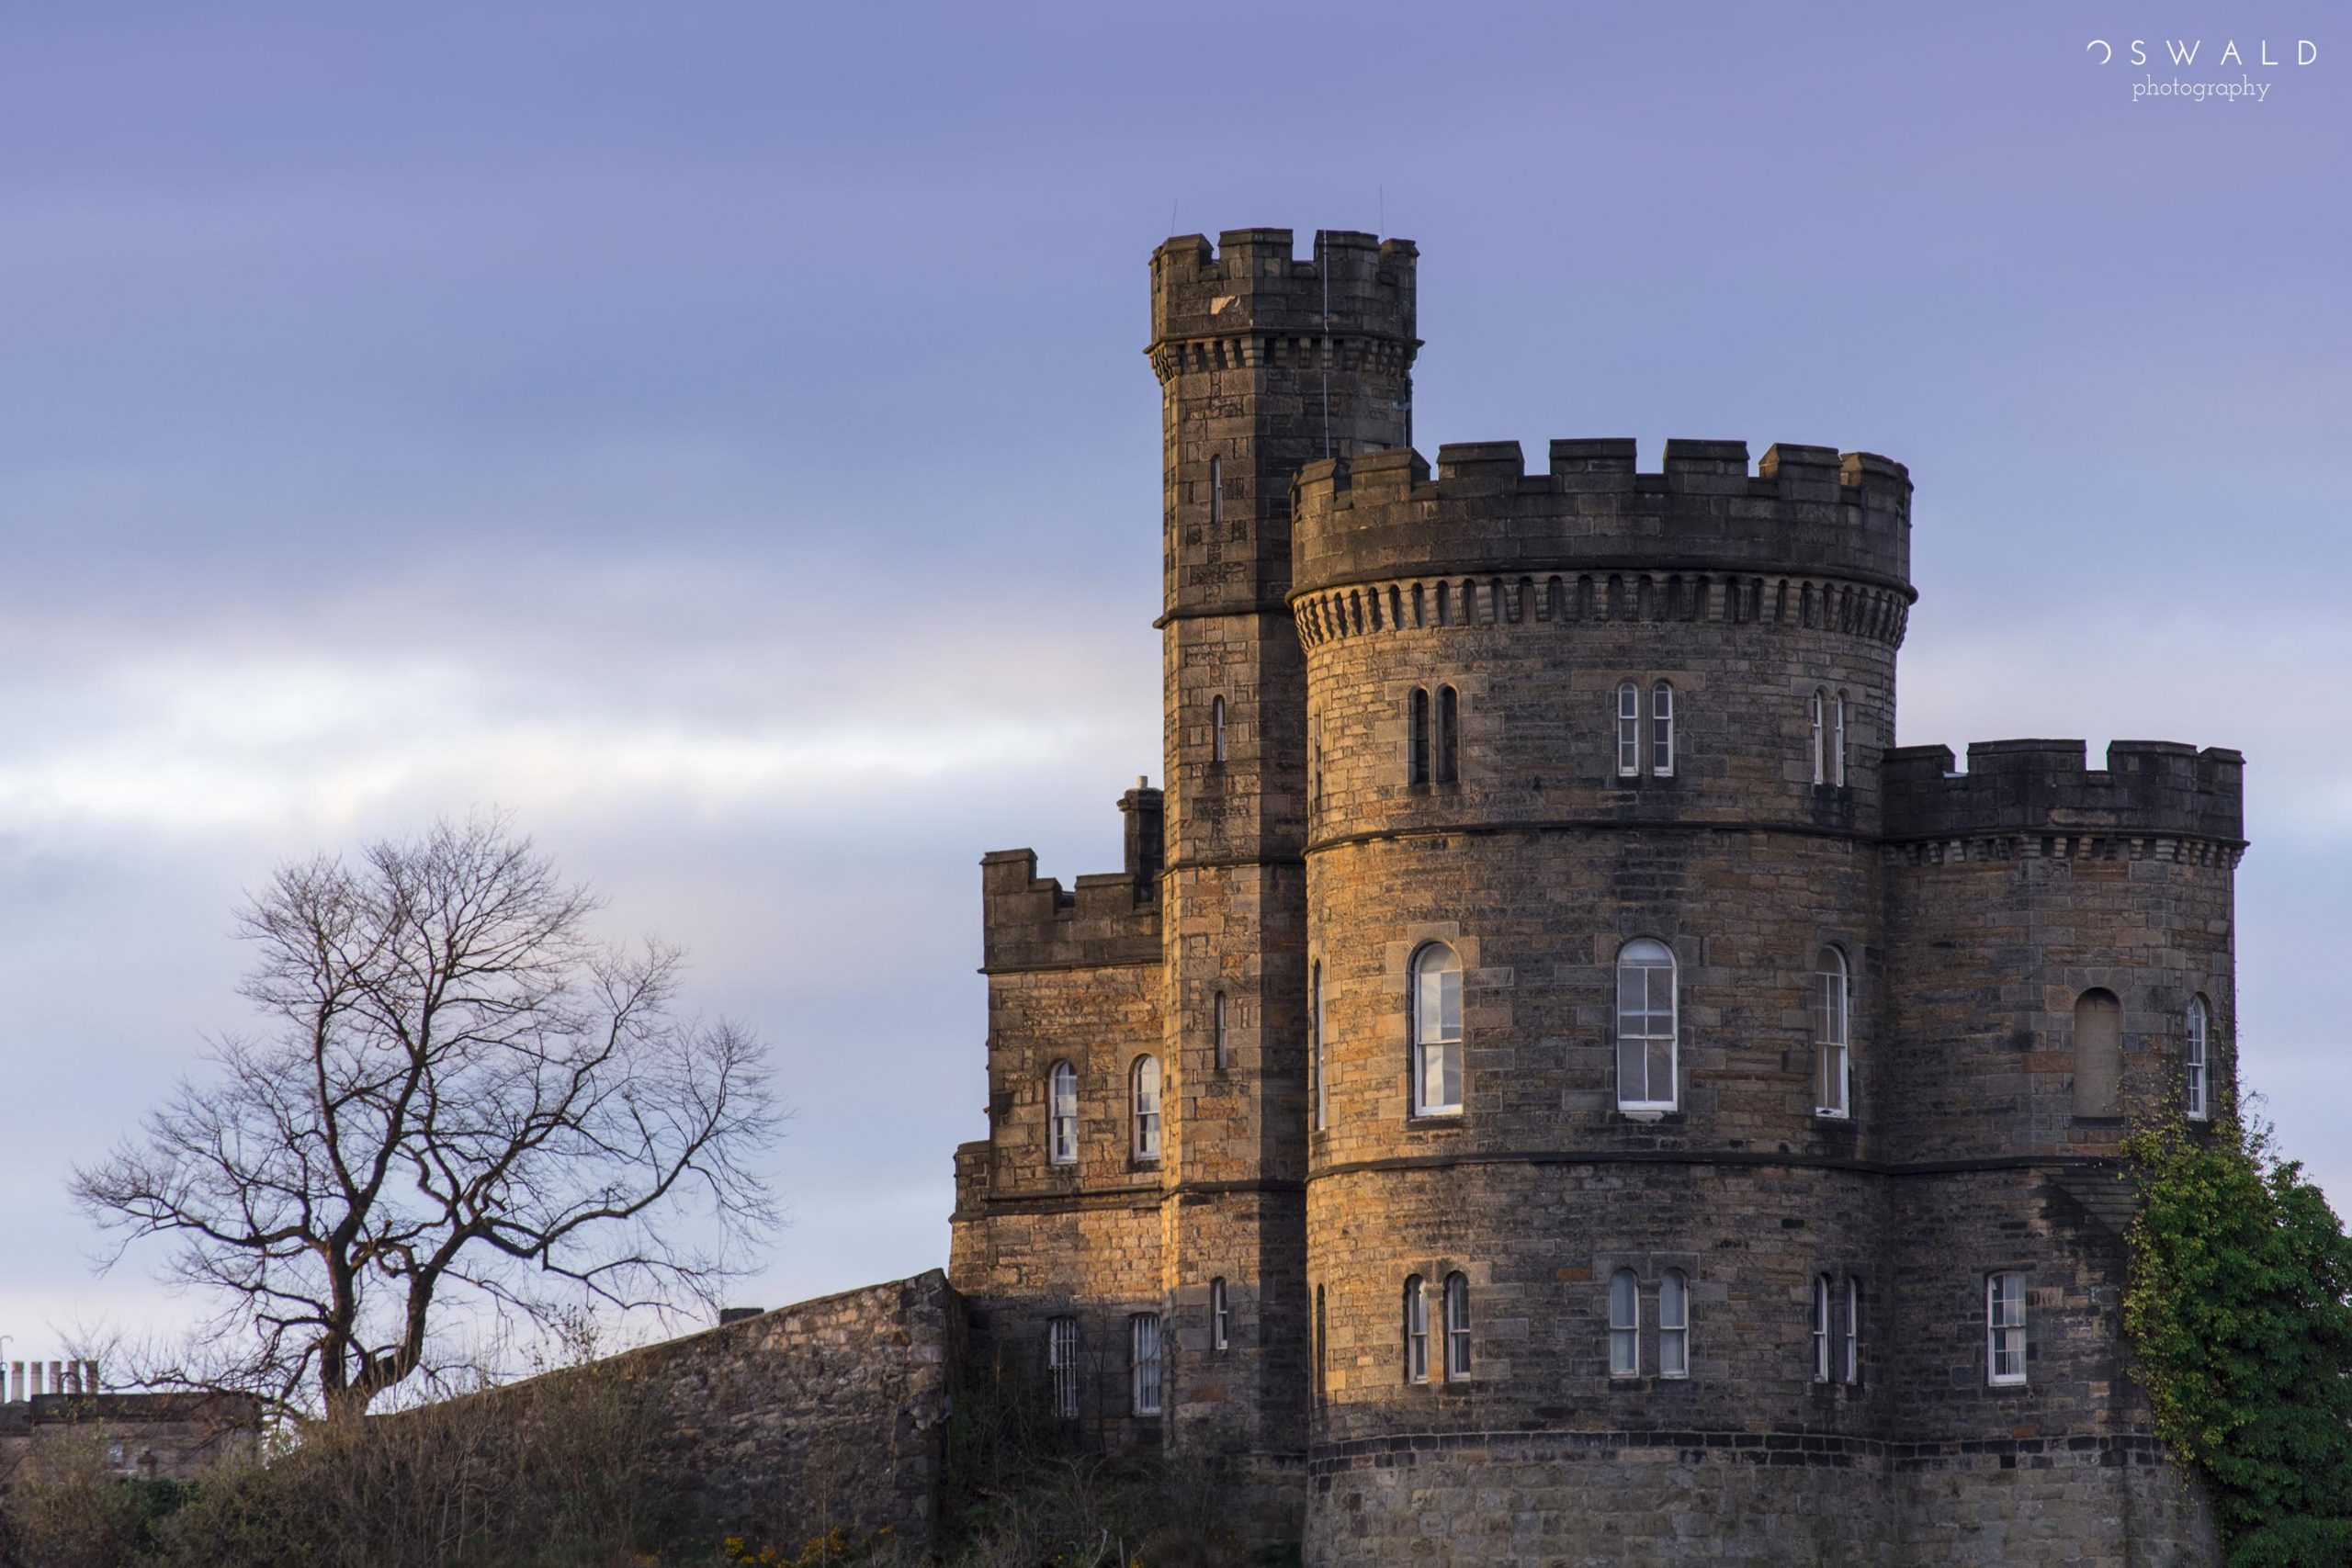 Photography of the Governor's House of Old Calton Jail on Calton Hill in Edinburgh, Scotland